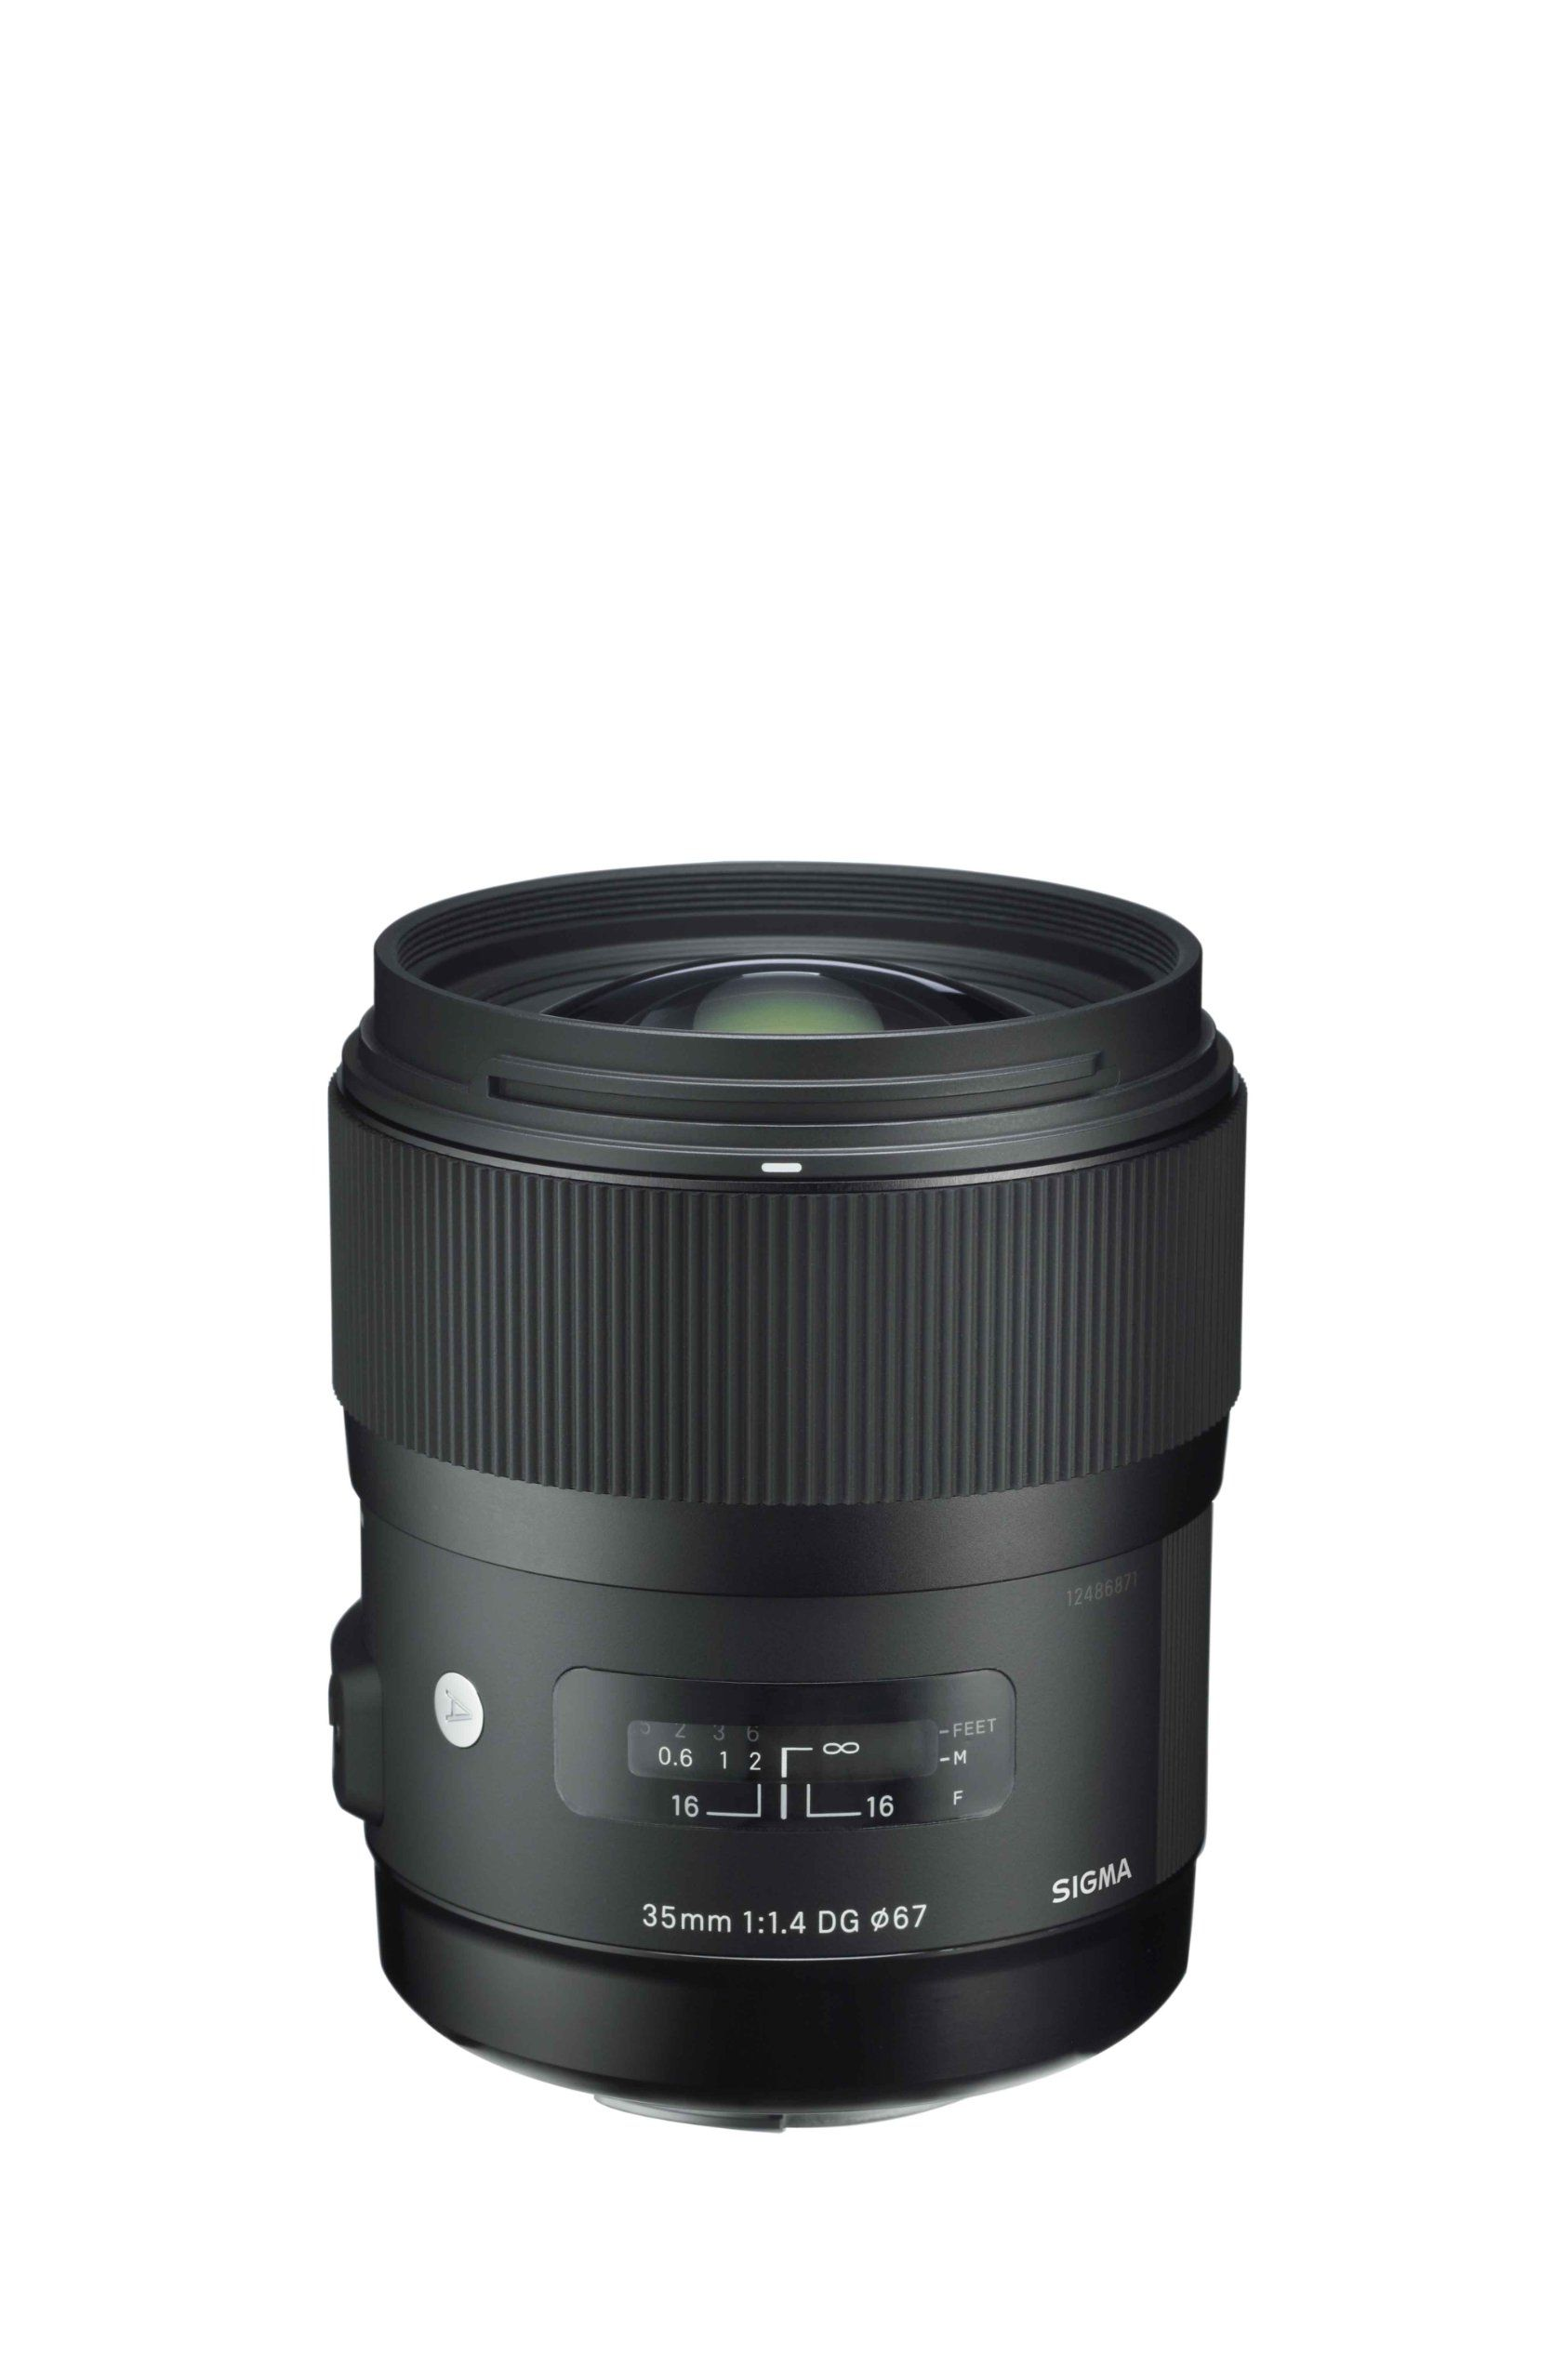 Sigma Art 35mm F1 4 Dg Hsm Lens For Nikon Black On My List A Friend Says Absolutely Get The Sigma 35 1 4 It S So Art Lens Dslr Lenses Fish Eye Lens